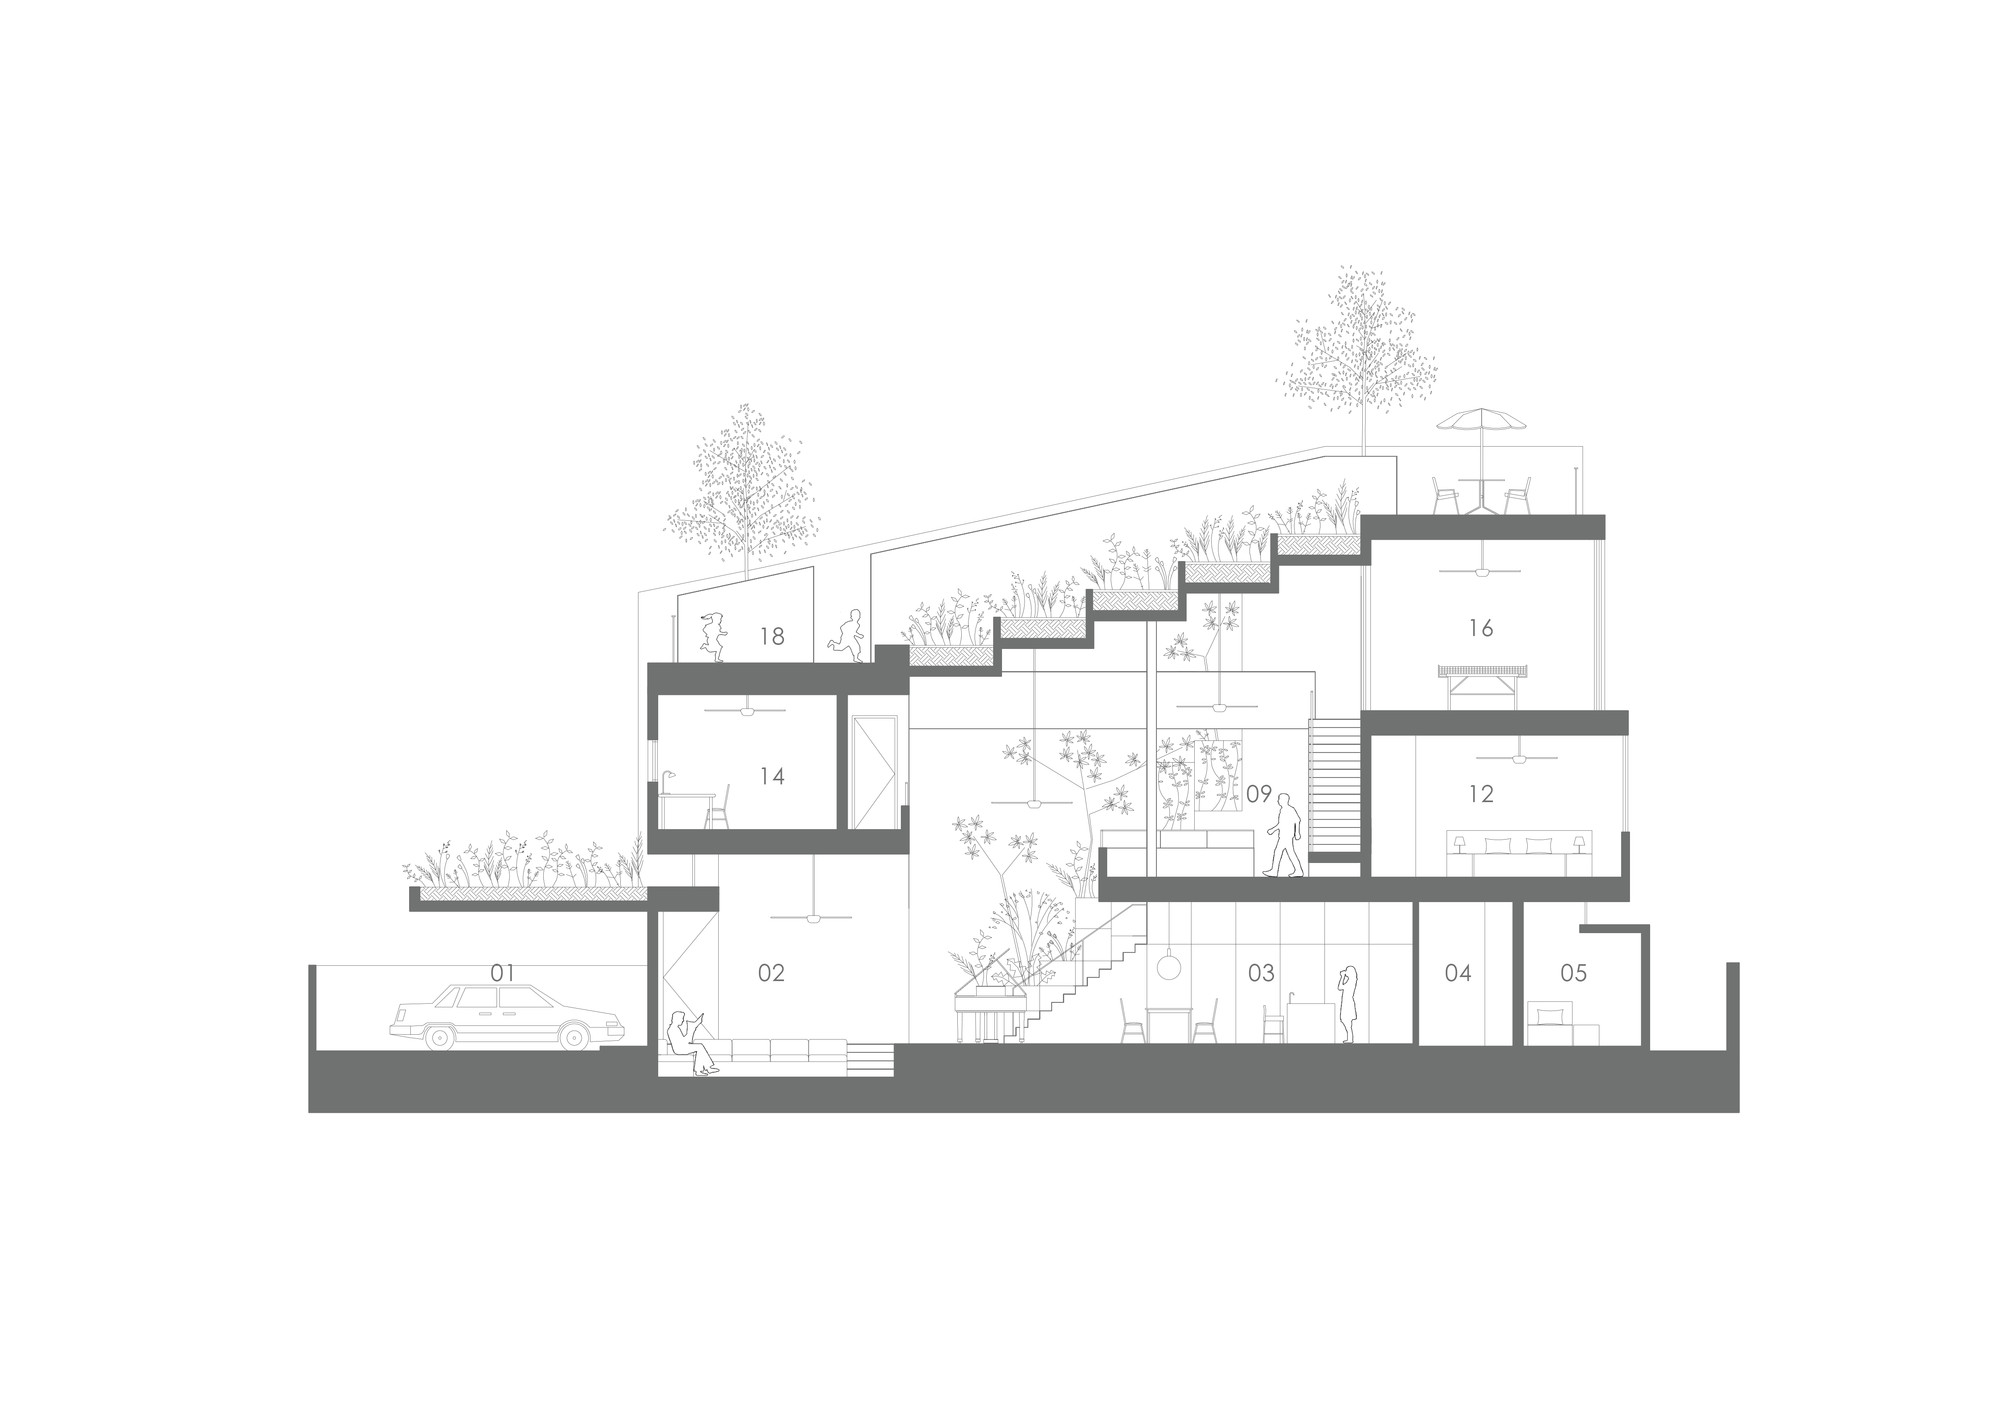 Gallery of terrace house formwerkz architects 15 for Season 2 terrace house